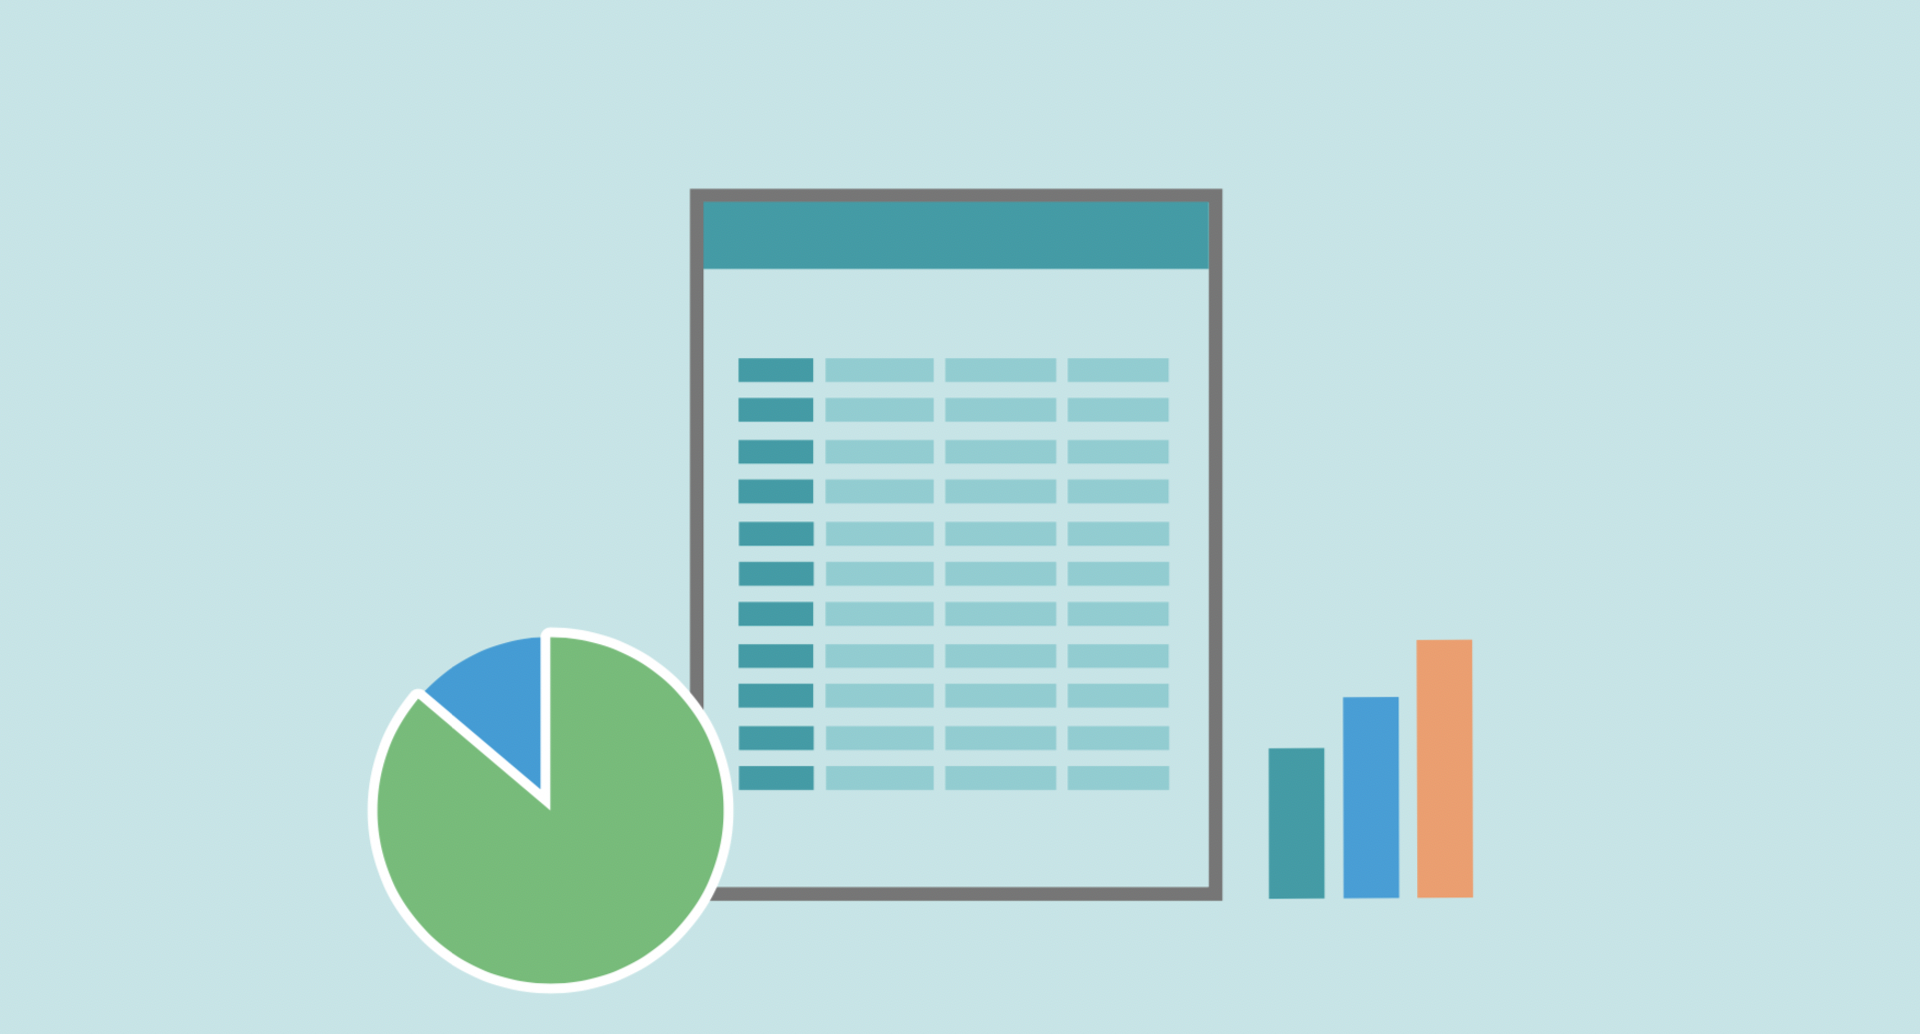 bar graphs and spreadsheets on a teal background